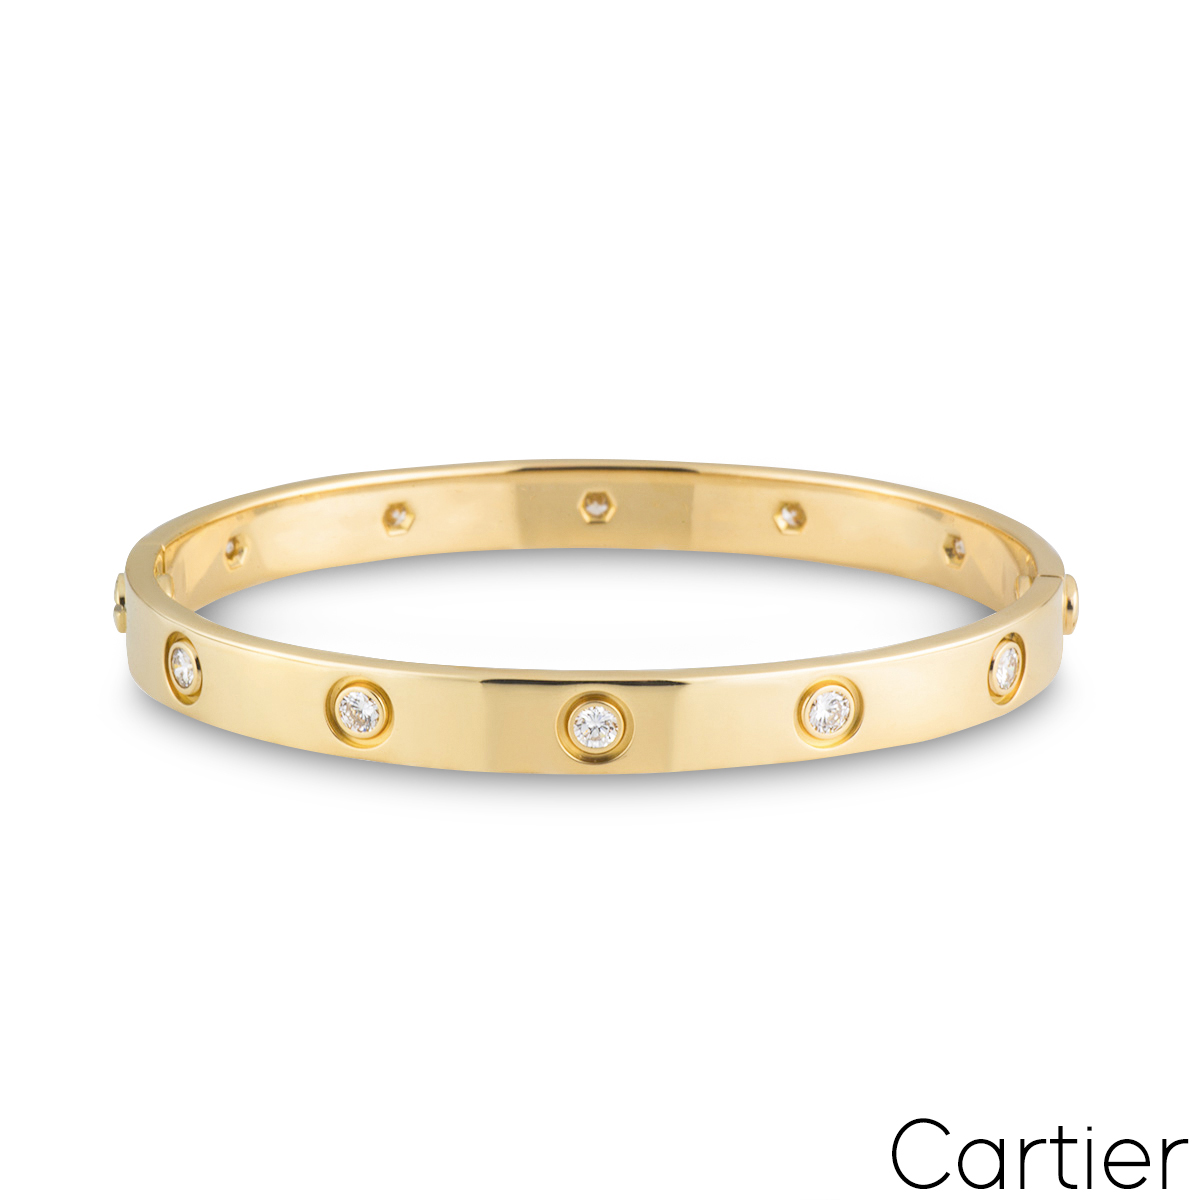 Cartier Yellow Gold Full Diamond Love Bracelet Size 16 B6040516